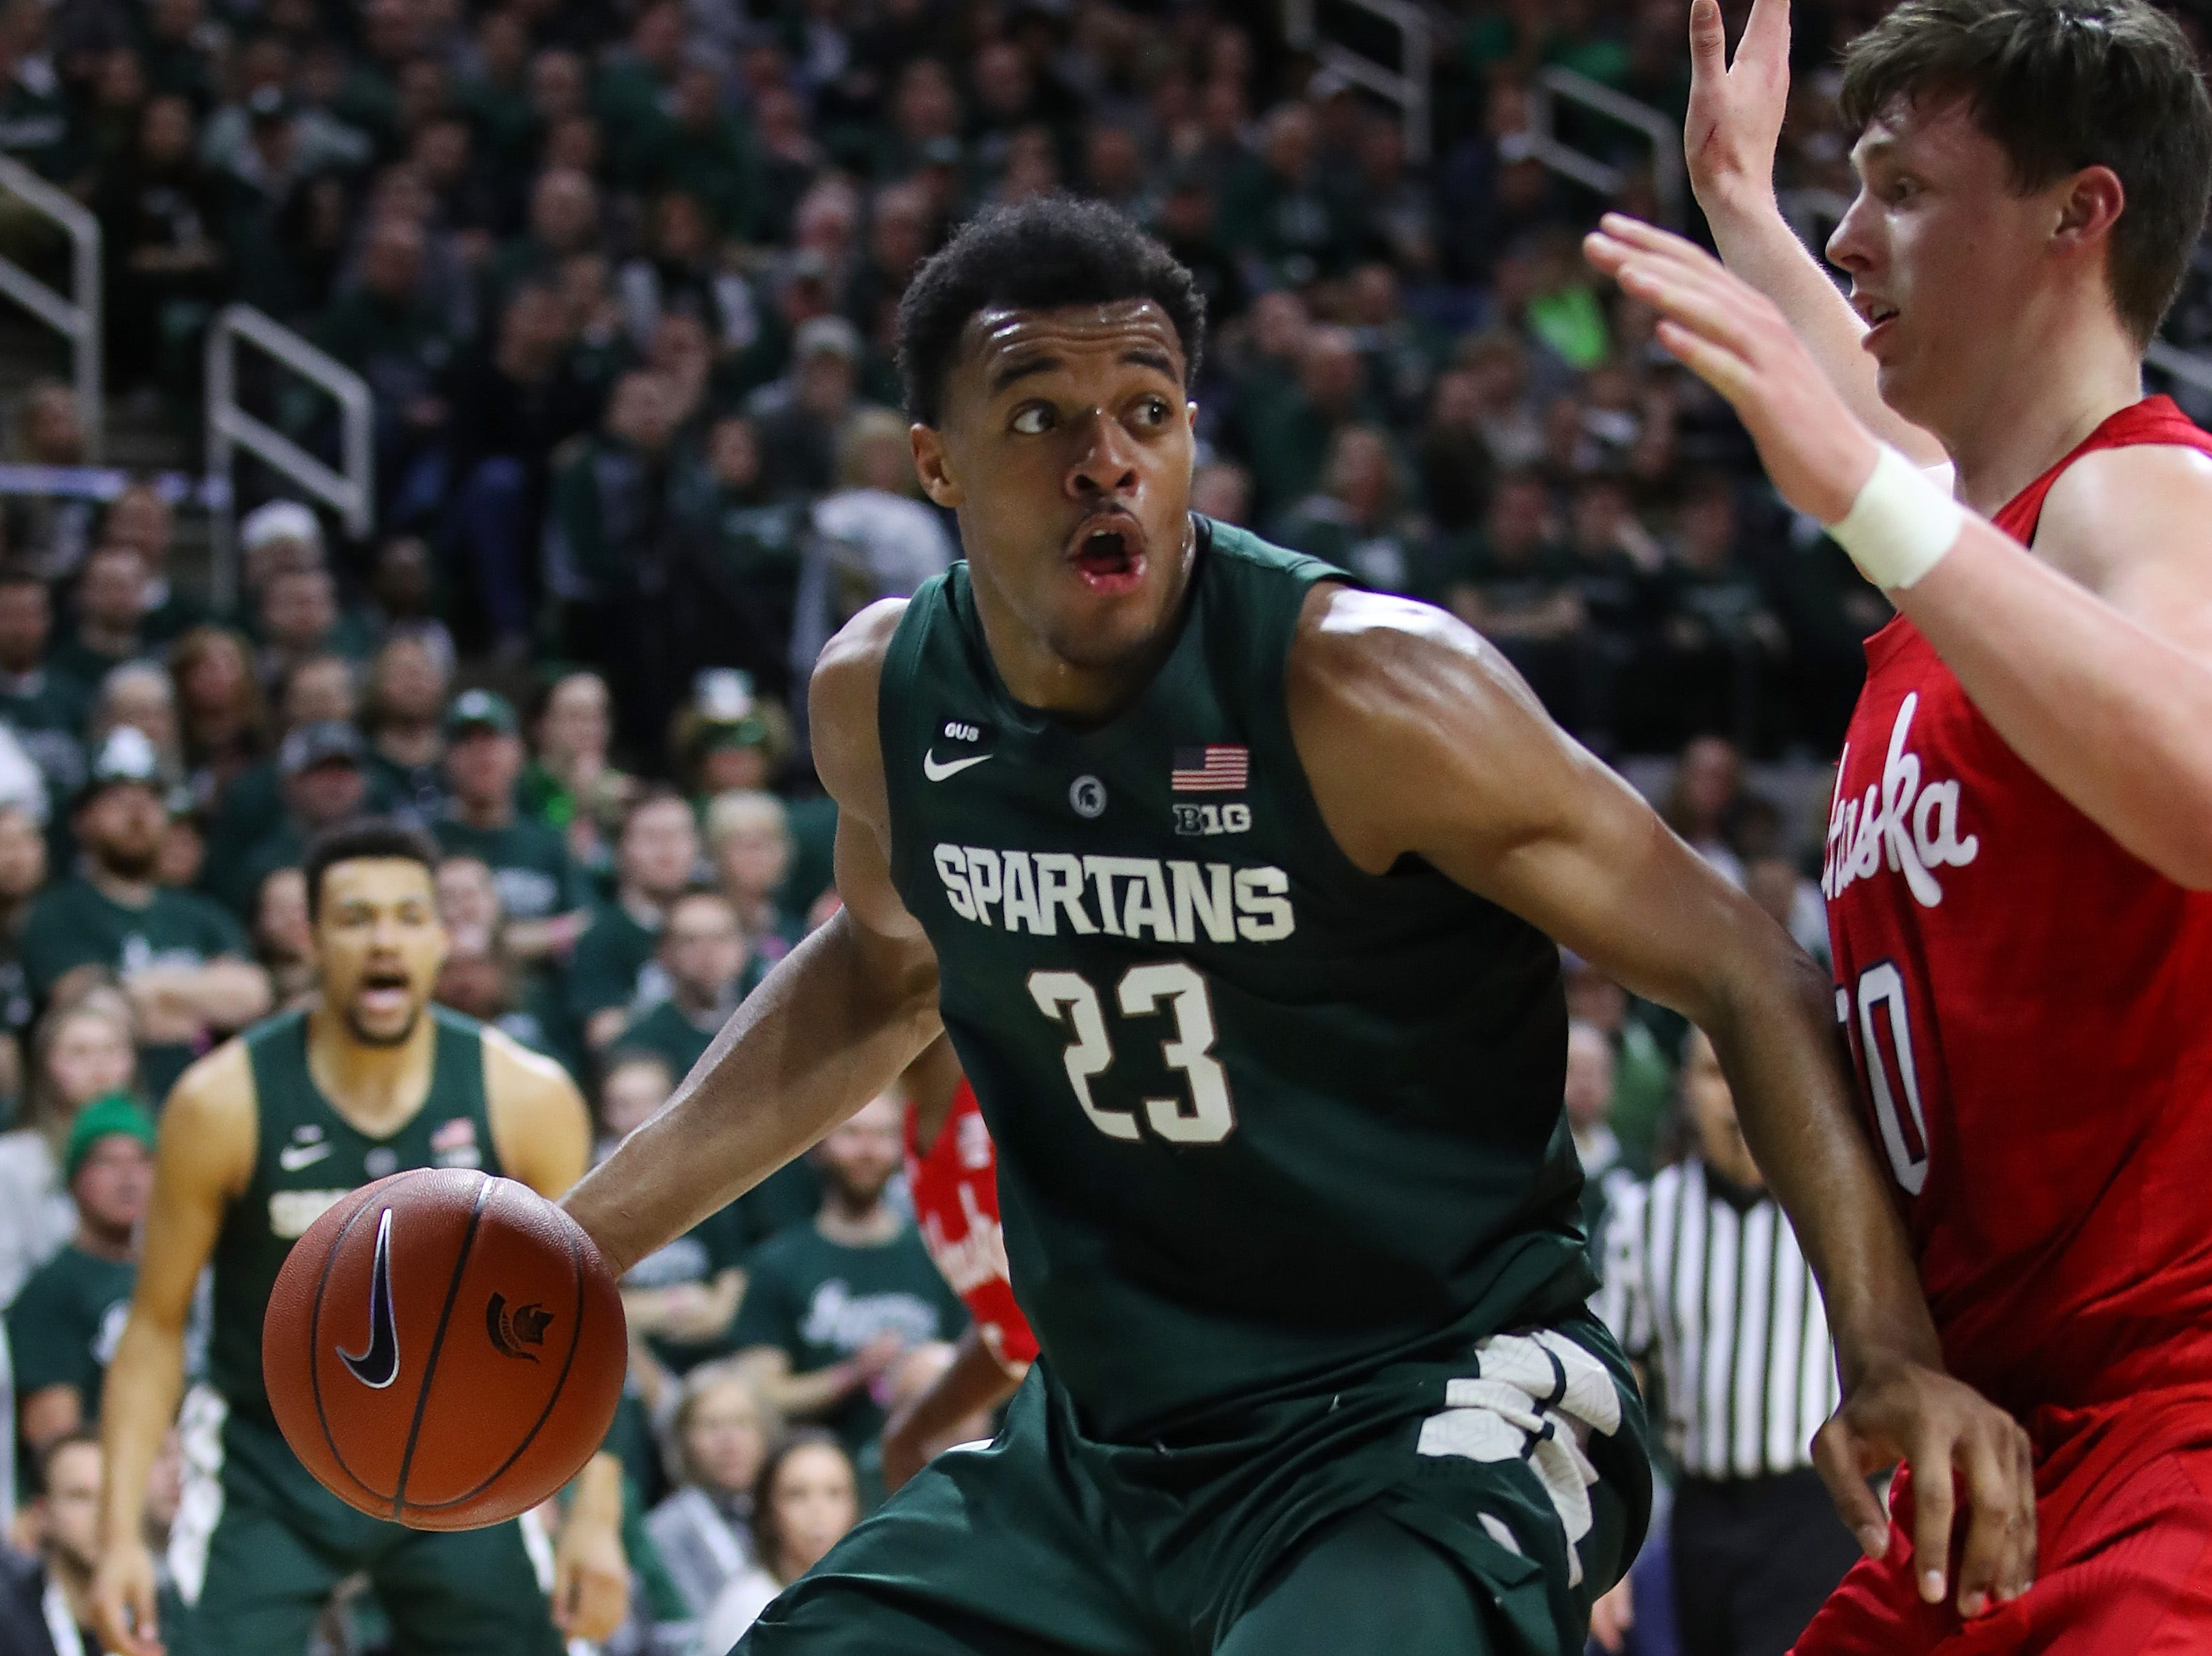 Xavier Tillman (23) of the Michigan State Spartans looks to drive around Tanner Borchardt (20) of the Nebraska Cornhuskers during the first half at Breslin Center on March 05, 2019 in East Lansing, Michigan.